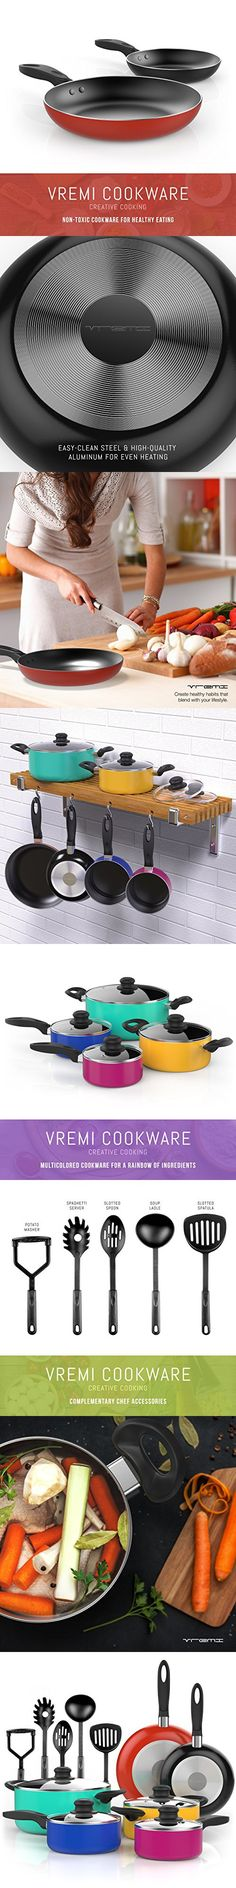 Vremi 15 Piece Nonstick Color Pop Cookware Set with Cooking Utensils - inc. Saucepans and Dutch Oven Pots with Glass Lids and Fry Pans for Saute - also has Spatula Slotted Spoons Masher and Soup Ladle